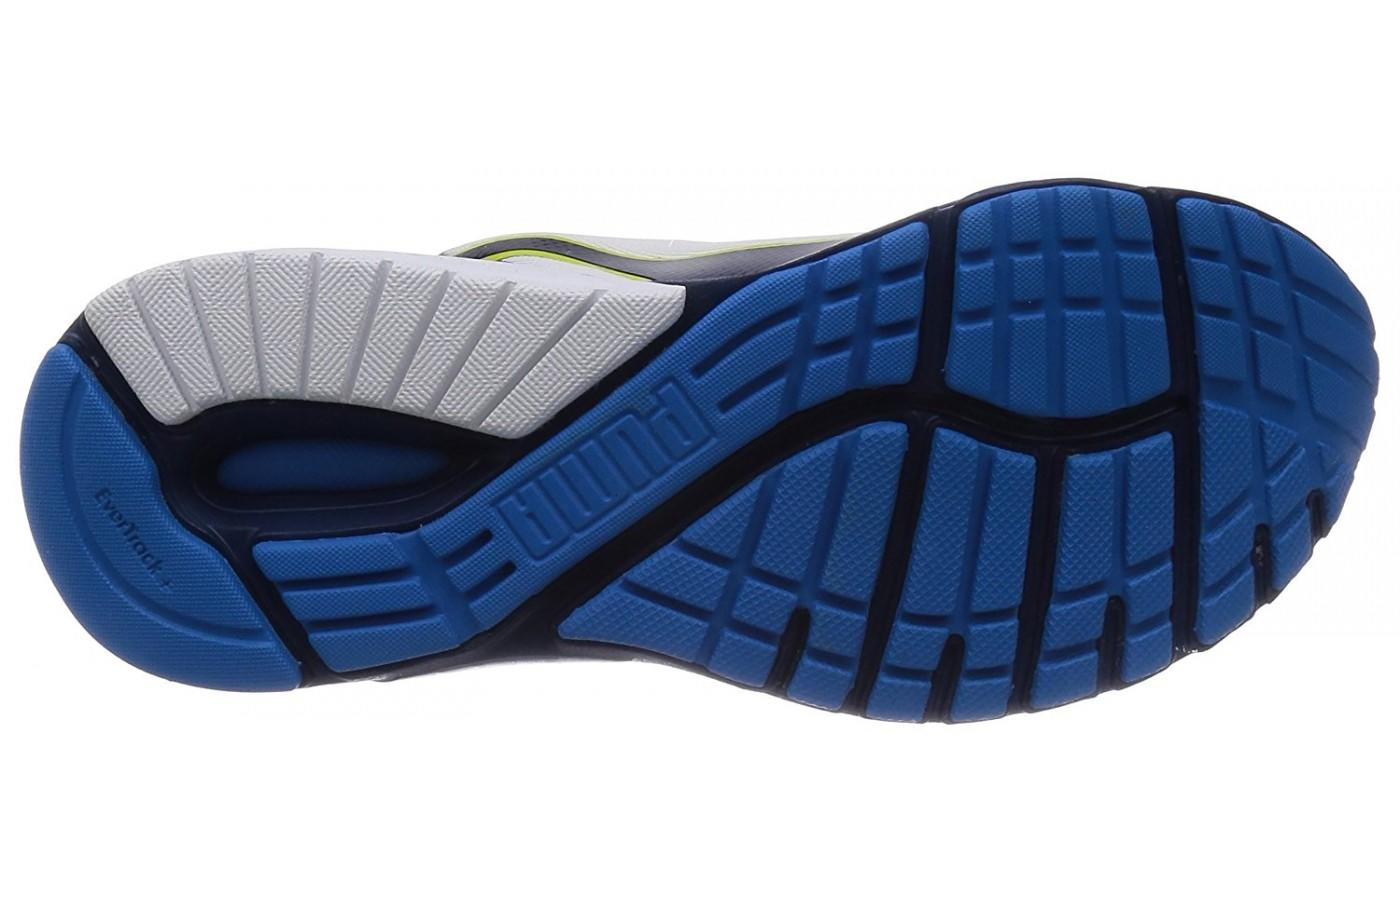 The flex grooves of the underfoot add traction and durability. eda8a79e9